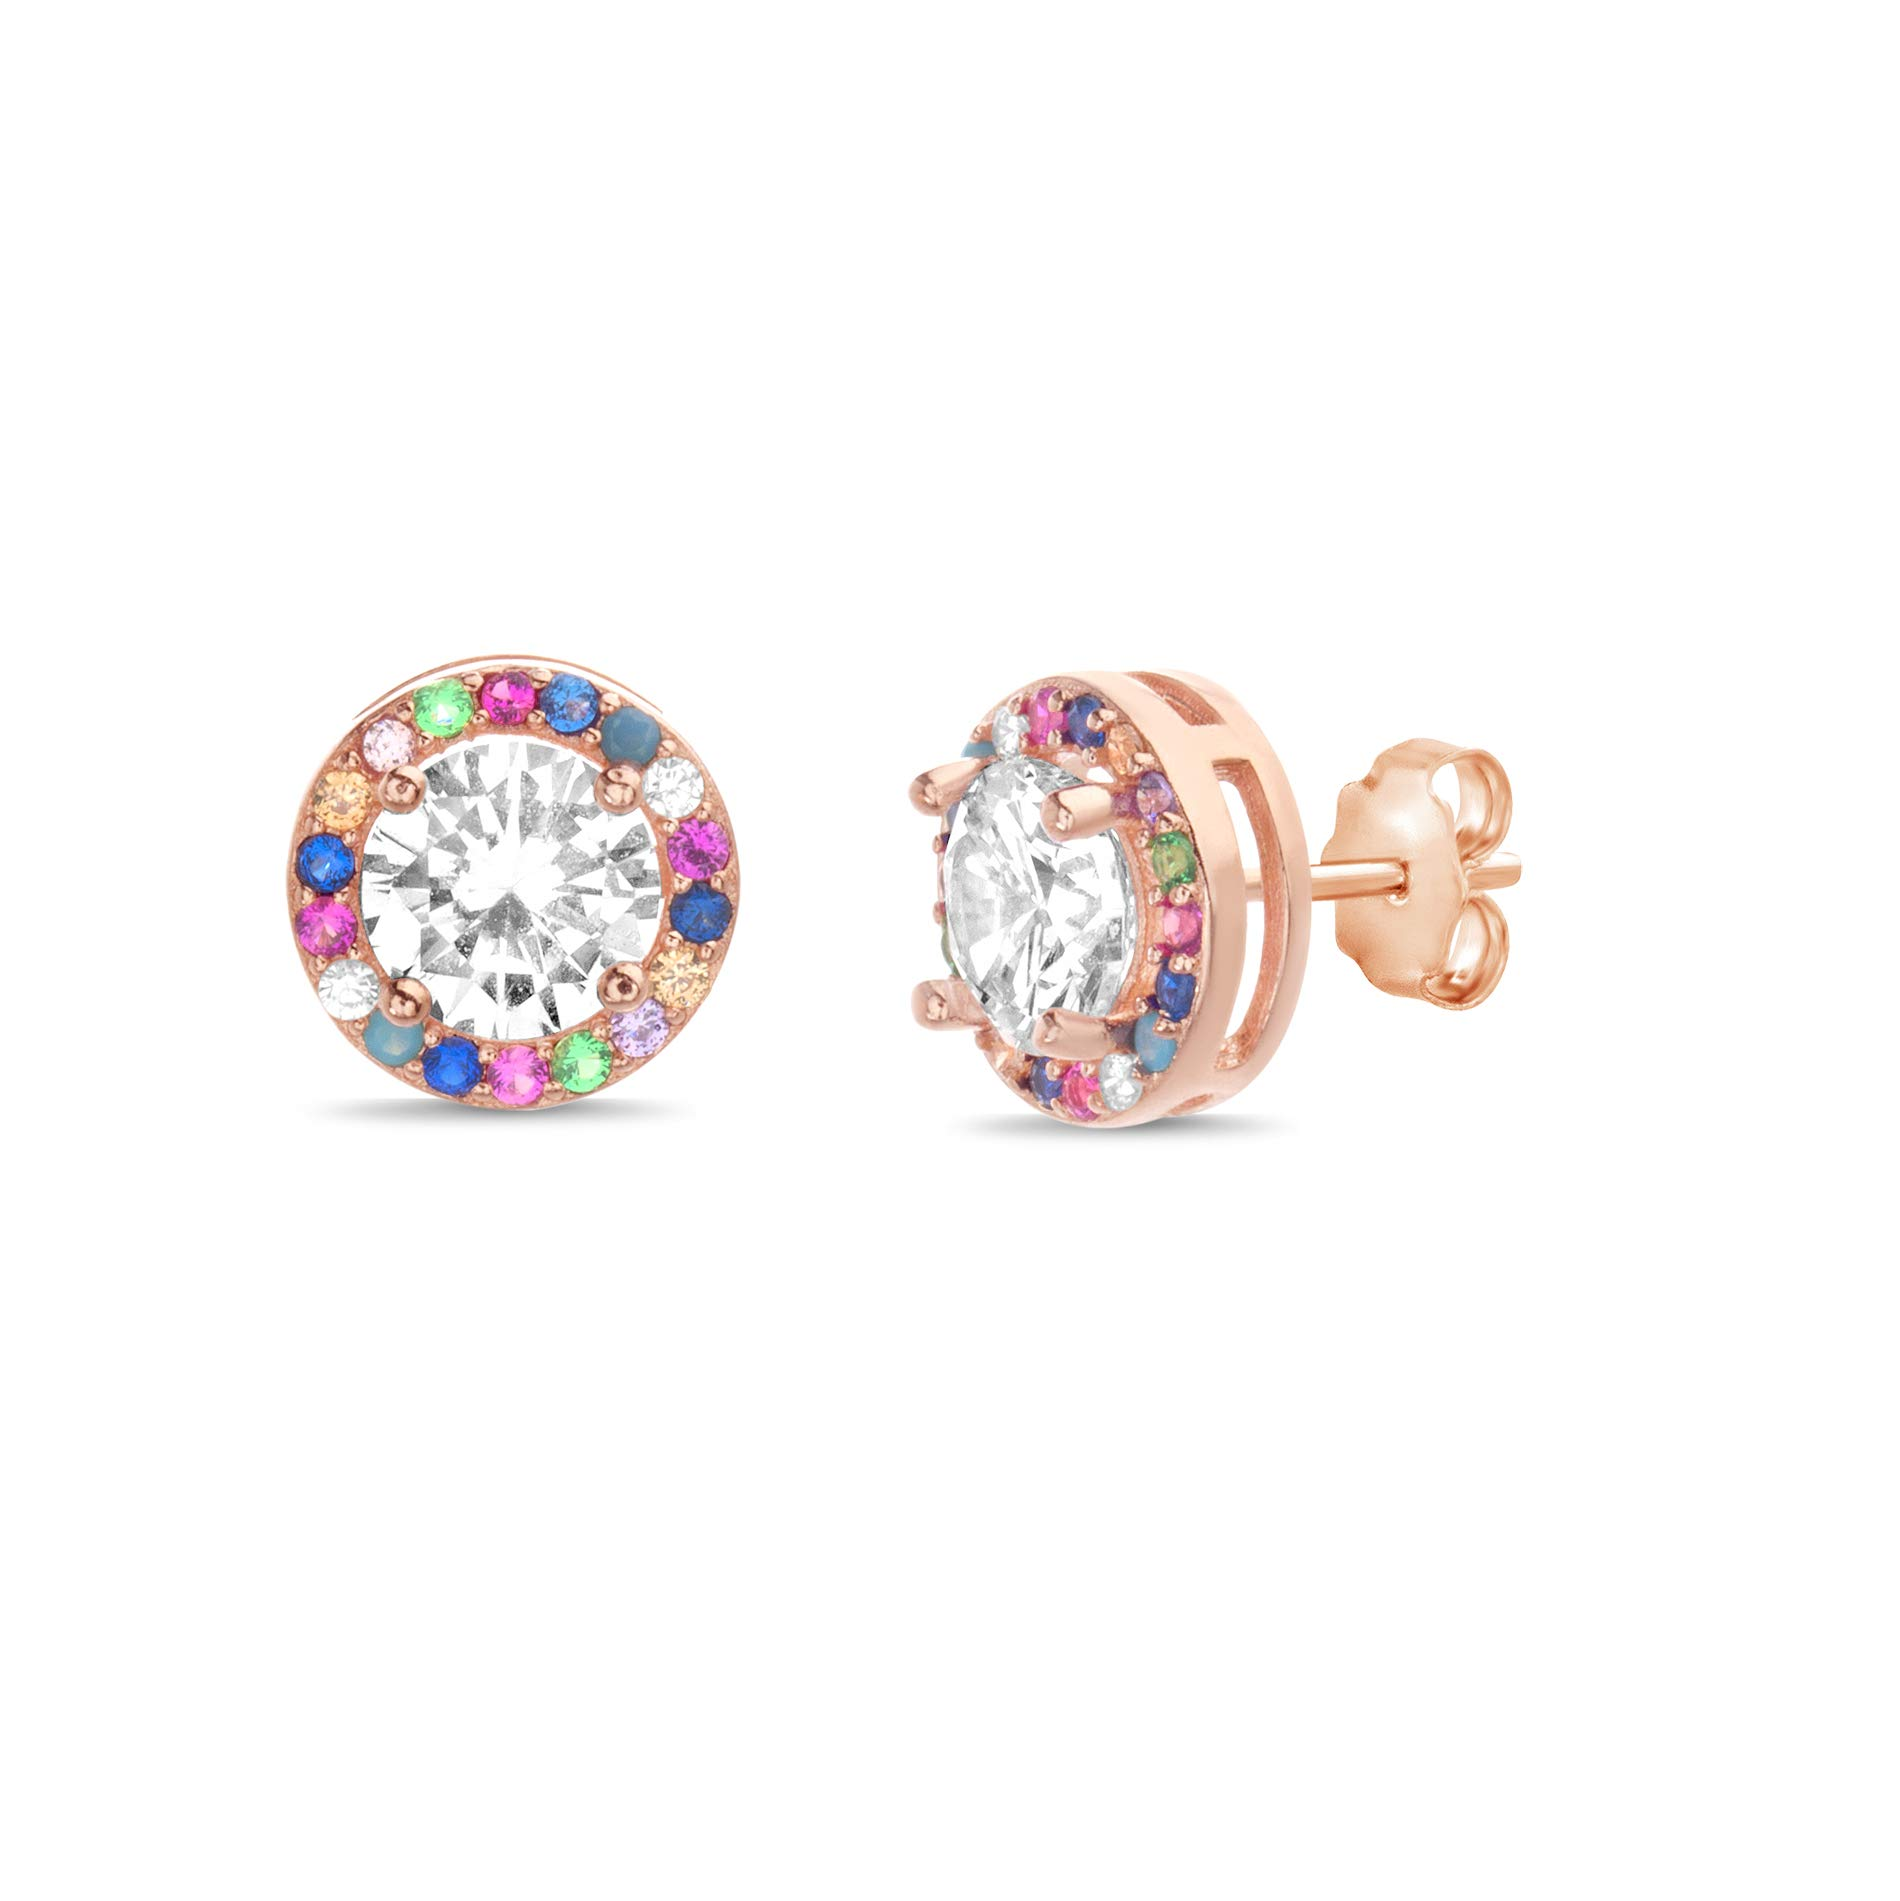 Devin Rose Sterling Silver Cubic Zirconia Rainbow Halo Stud Earrings for Women (Various Styles)